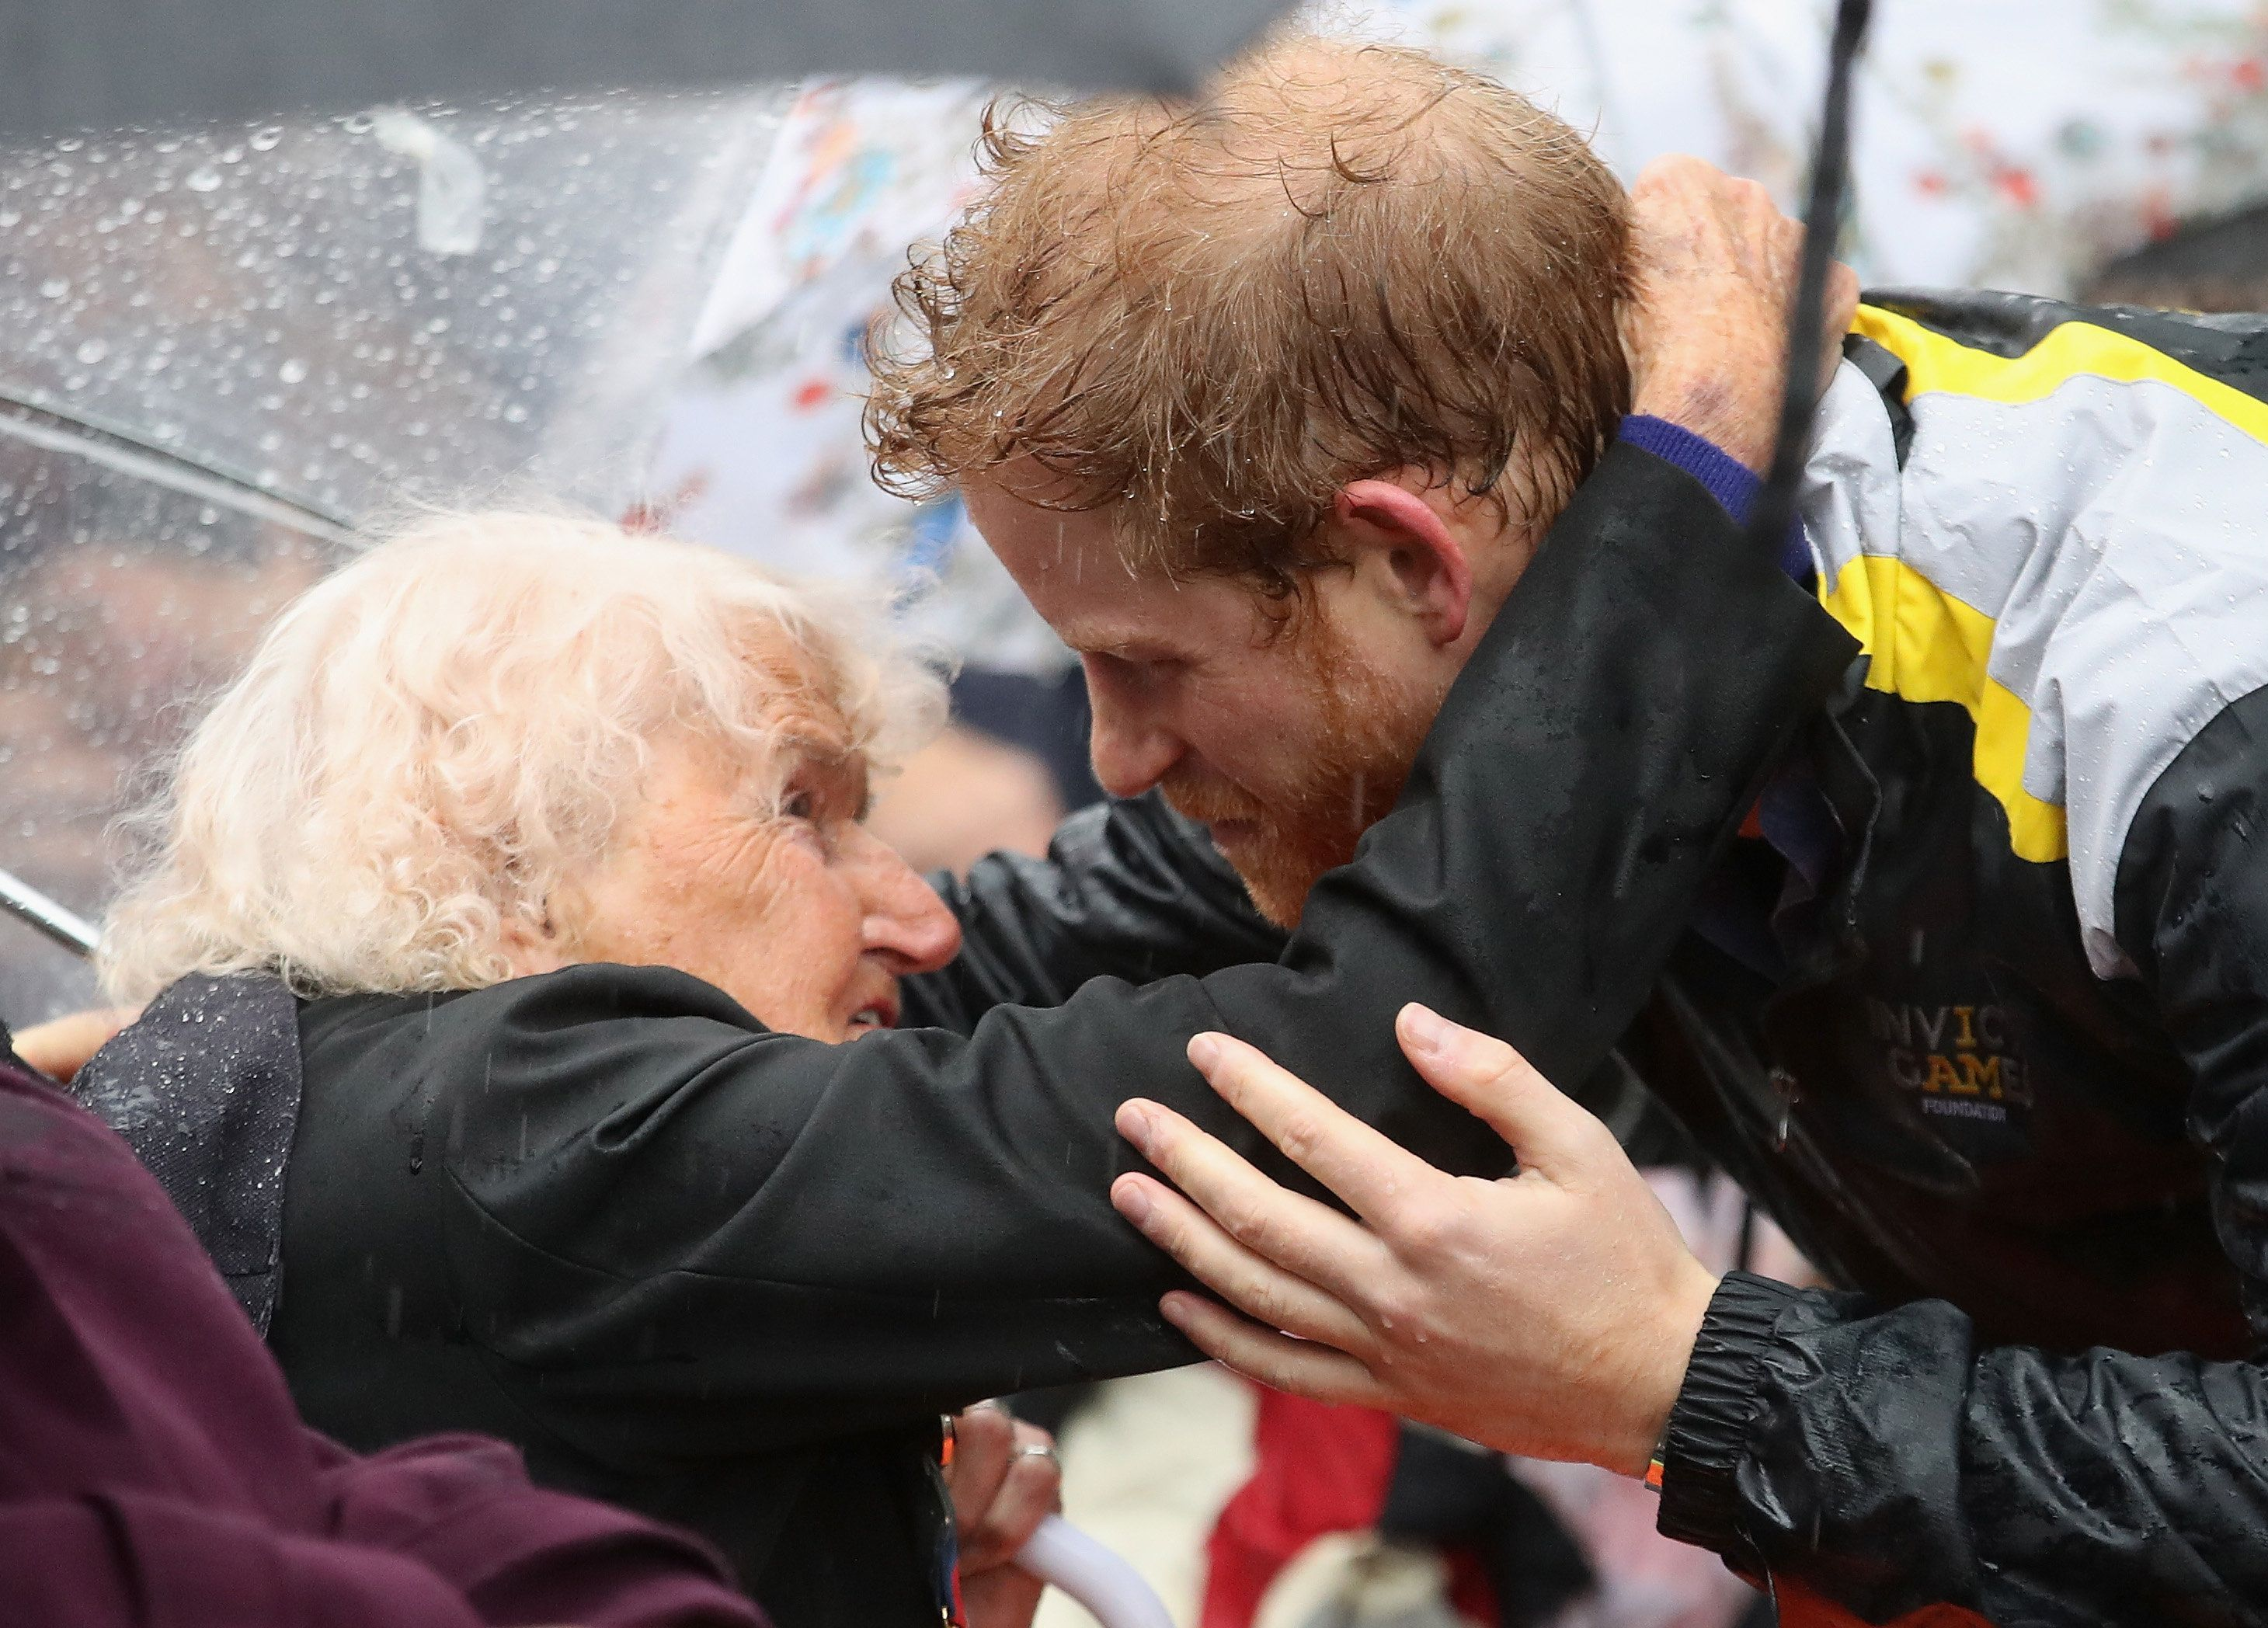 Daphne Dunne had to wait in the rain in 2017 to meet Prince Harry.